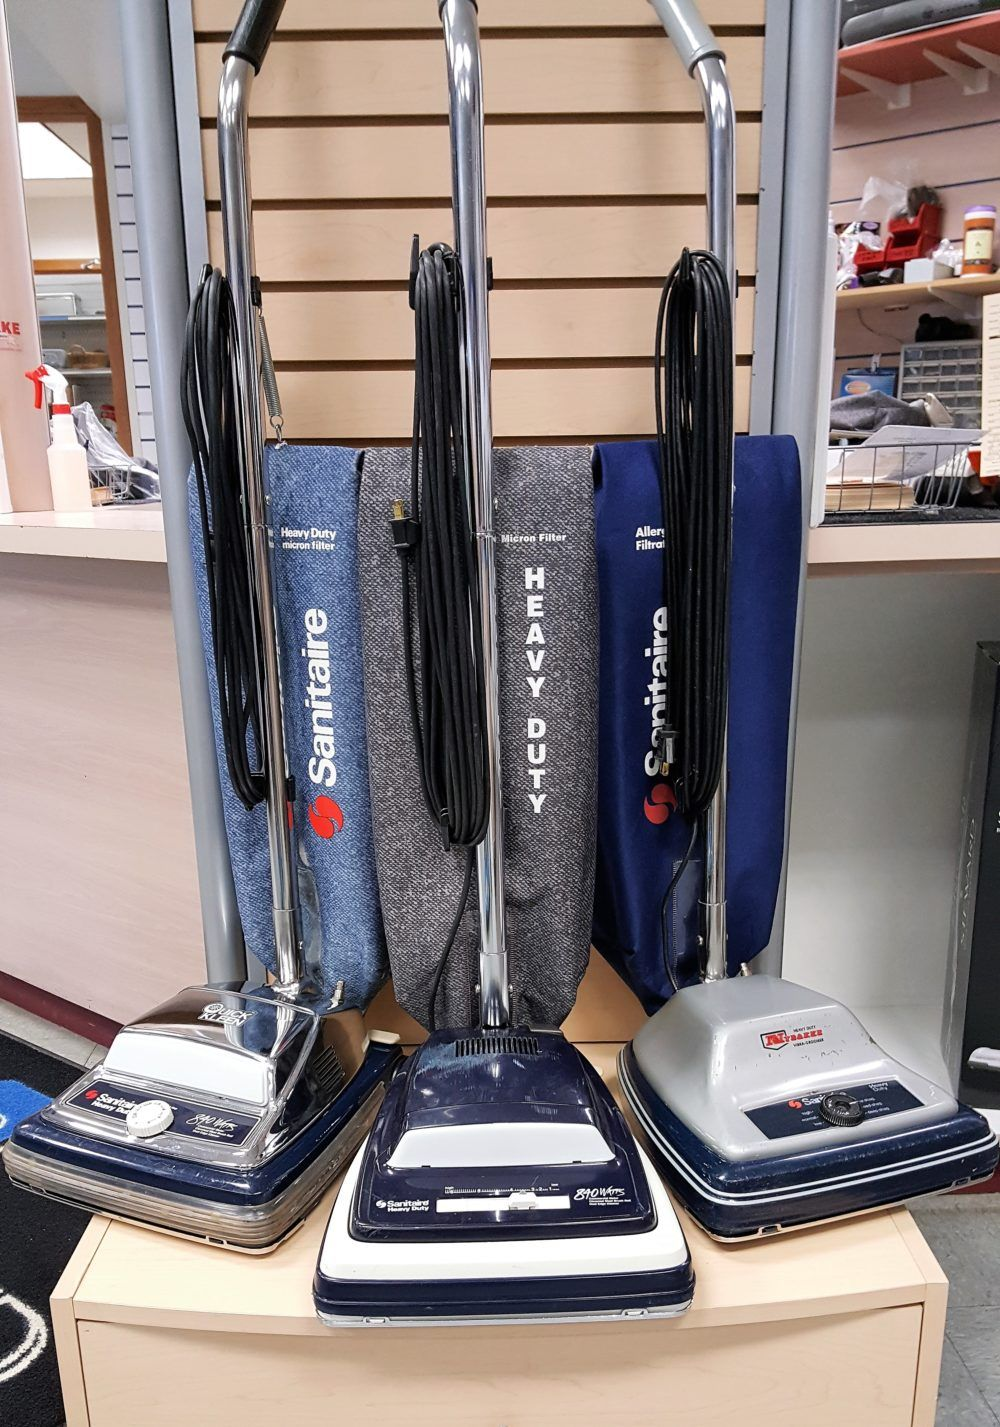 Used Vacuums For Sale